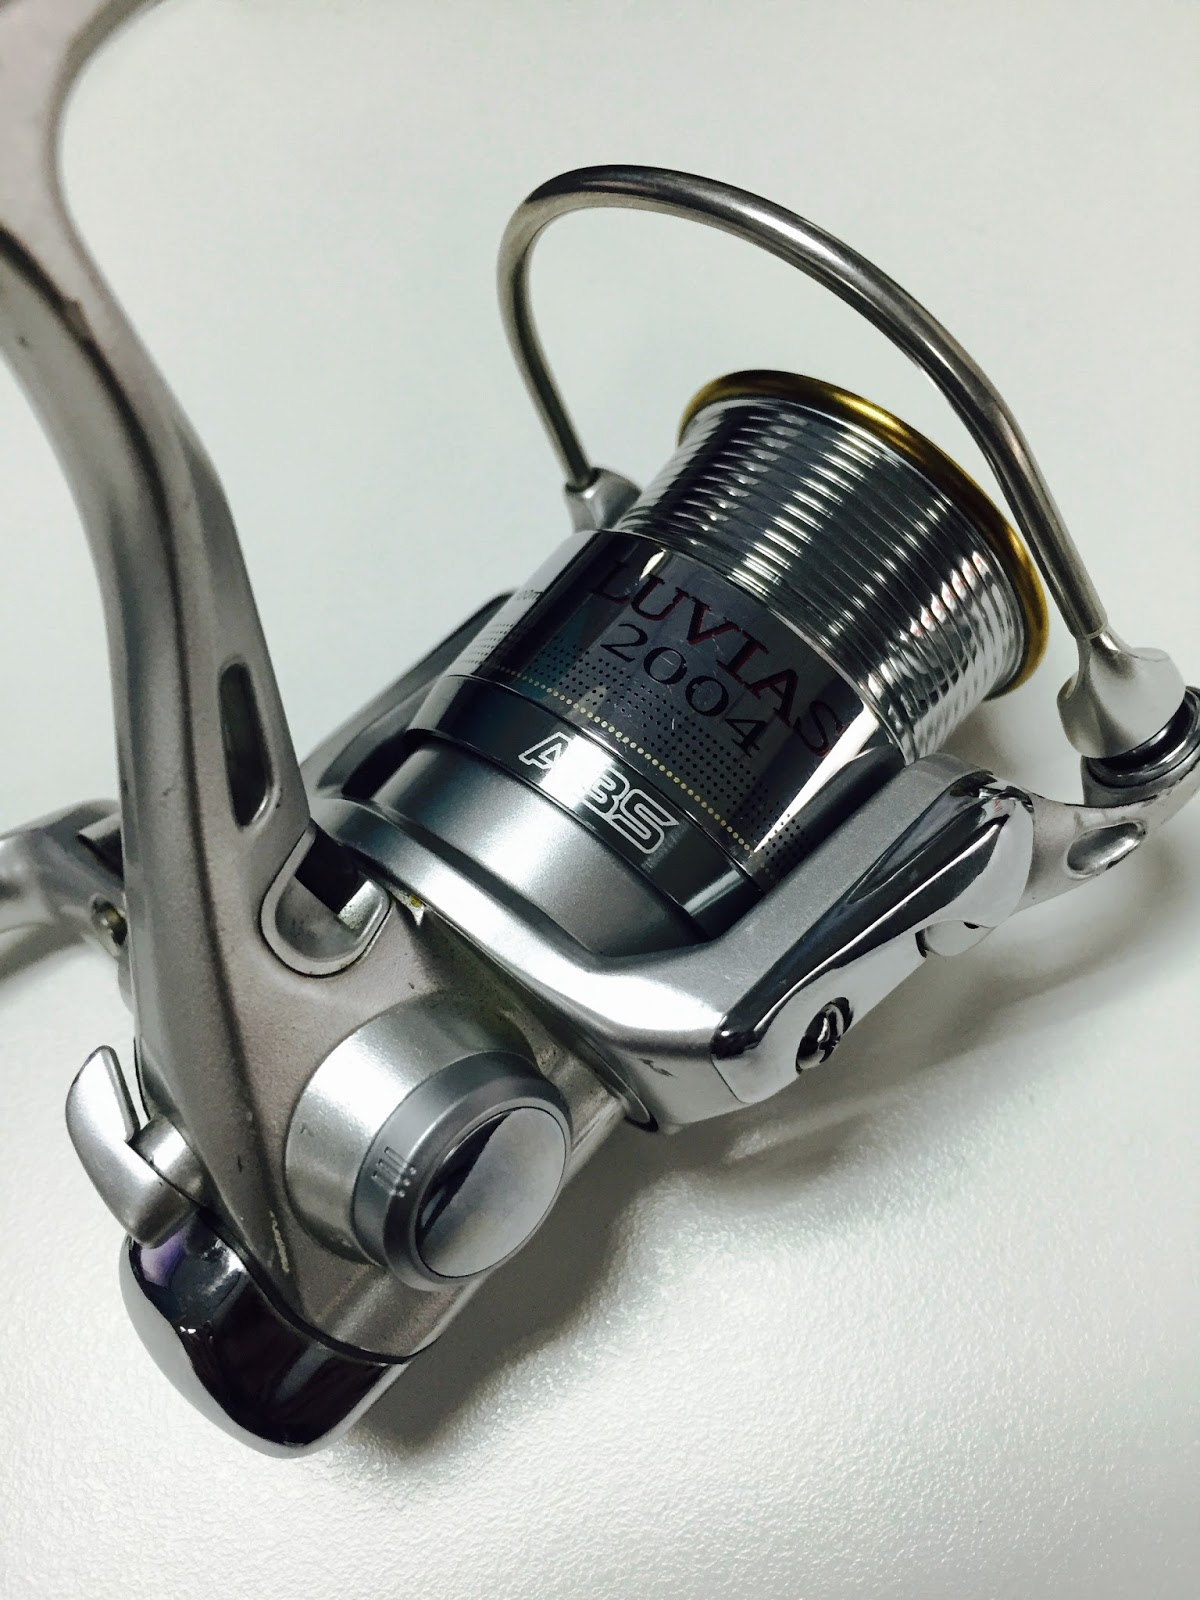 29674144b3d ... Daiwa Luvias 2004. More than a month ago, I got myself a new toy as a  project reel. It was one of those rare occasions when I open eBay and on  that ...